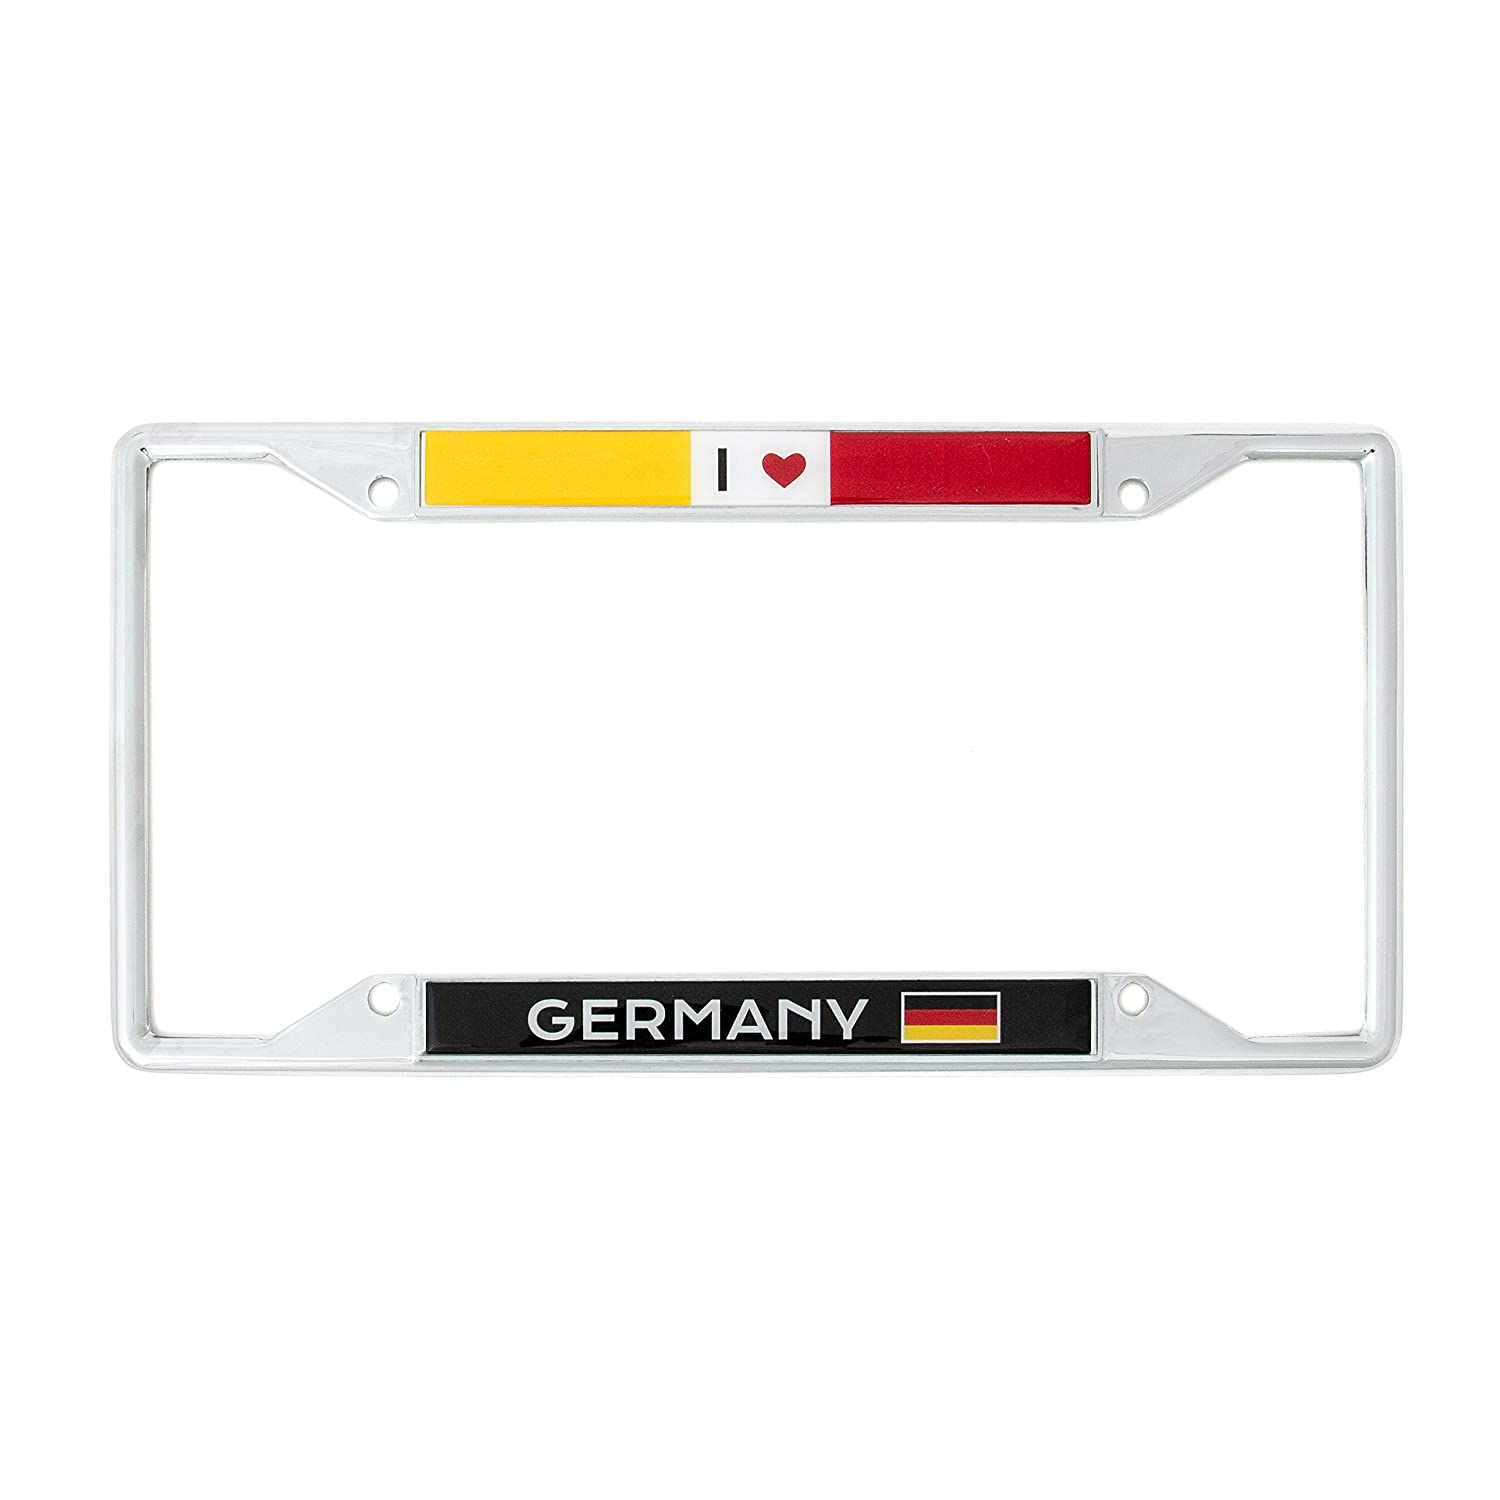 Desert Cactus Country of Germany I Heart Love License Plate Frame for Front Back of Car Vehicle Truck German